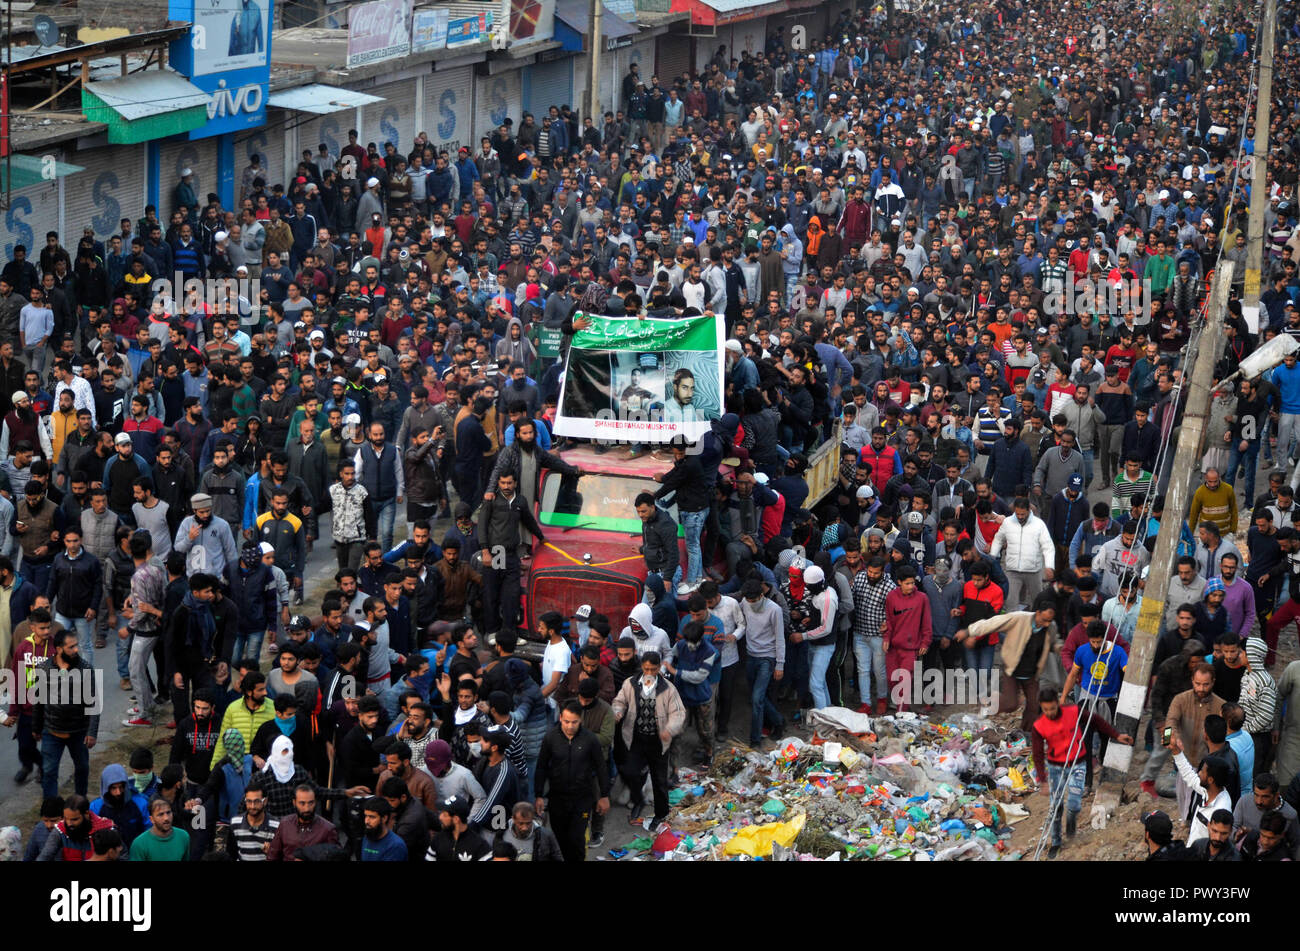 October 17, 2018 - A large crowd carry the body of Mehraj Bangroo, a rebel commander killed during a gun fight with Indian government forces at Fateh Kadal in Srinagar on 17 October 2018. According to police sources, an early morning cordon and search operation turned into a gun battle during which Lashkar-e-Toiba top commander, Mehraj Bangroo, and his associate Fahad Waza were killed. The police issued a statement saying that one policeman was also killed and three were injured in the encounter and that Raees Ahmed, the owner of the house where the militants were hiding, was also killed (Cre - Stock Image